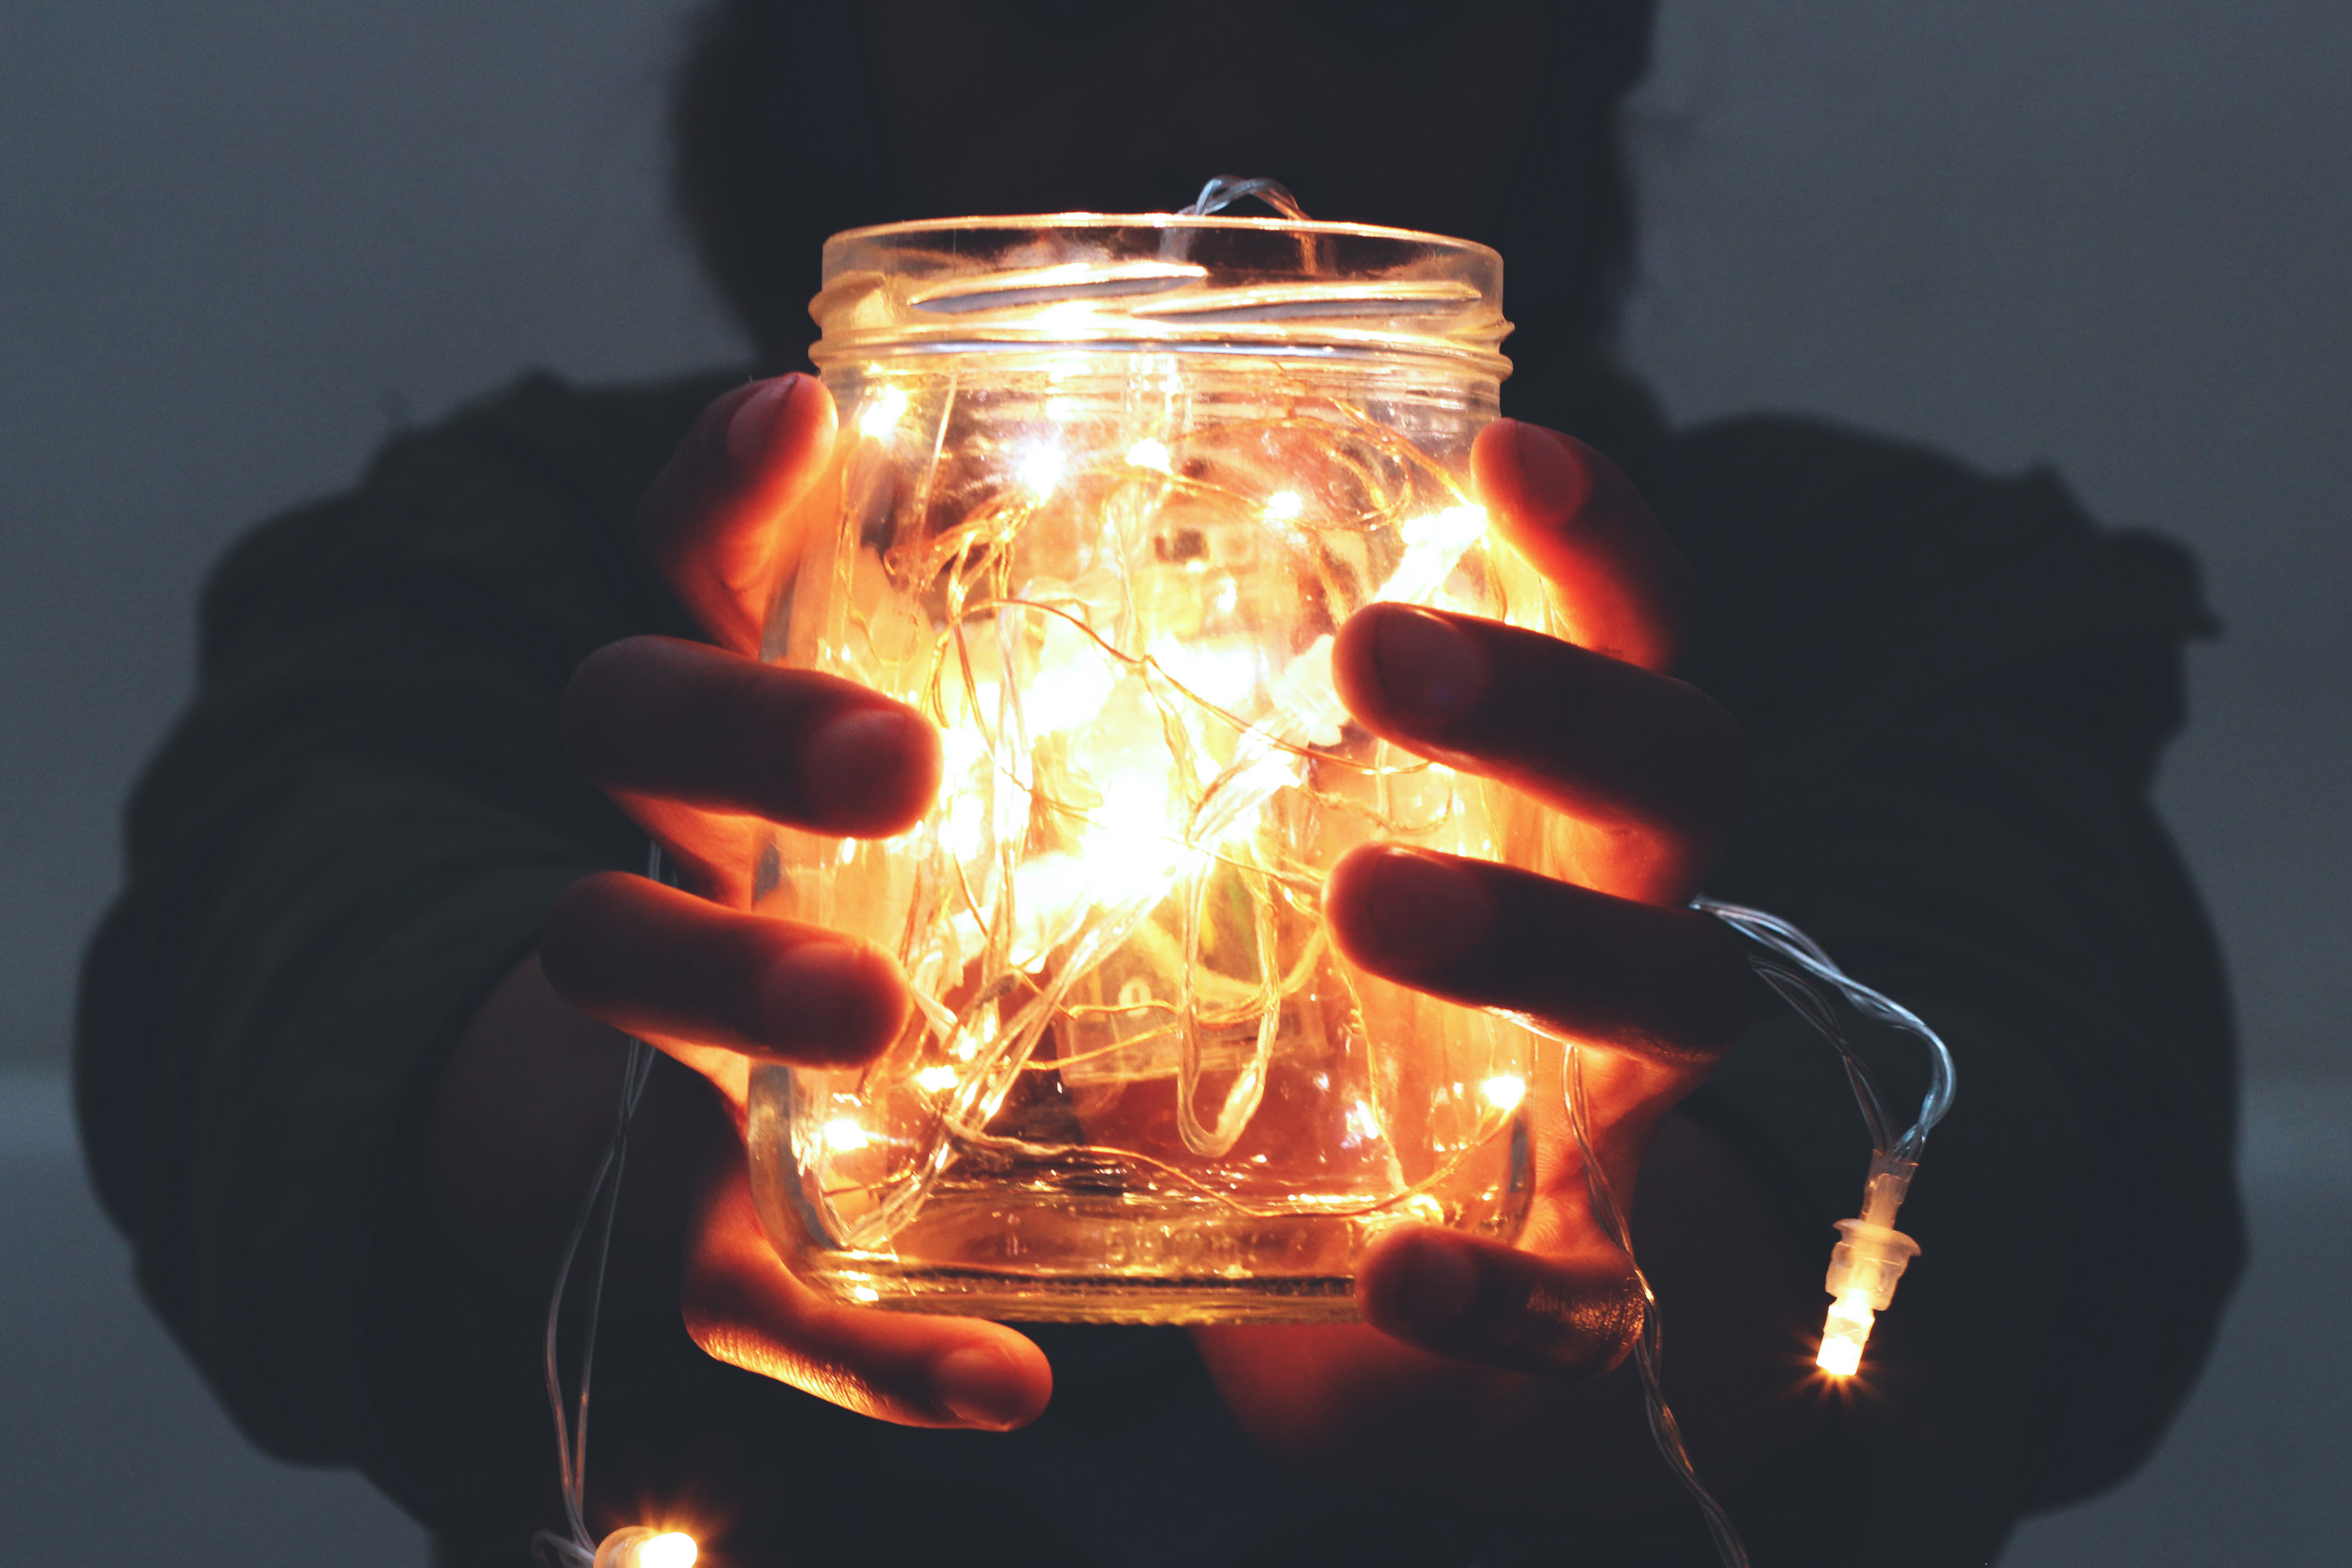 Jar of lights